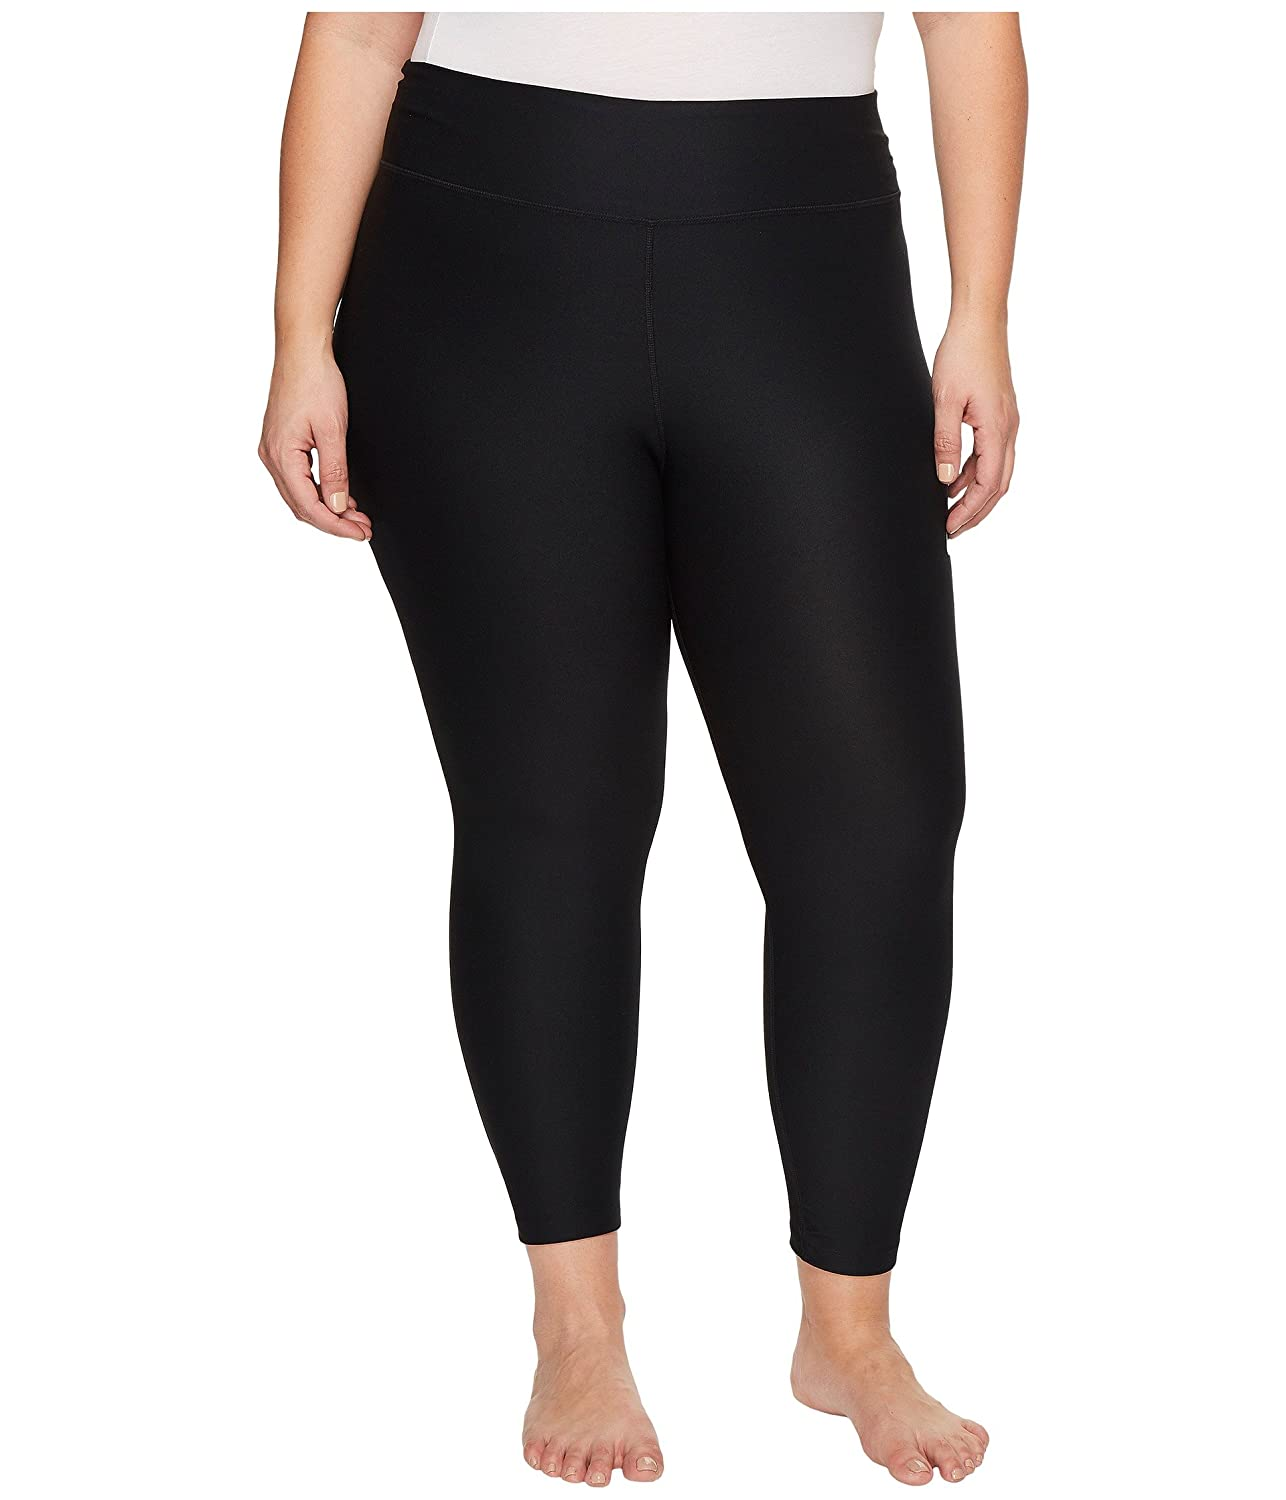 23de4471b1f0d 88% Polyester/12% Spandex NIKE Power fabric provides stretch and support.  Dri-FIT technology helps keep you dry and comfortable; cropped length hits  at the ...